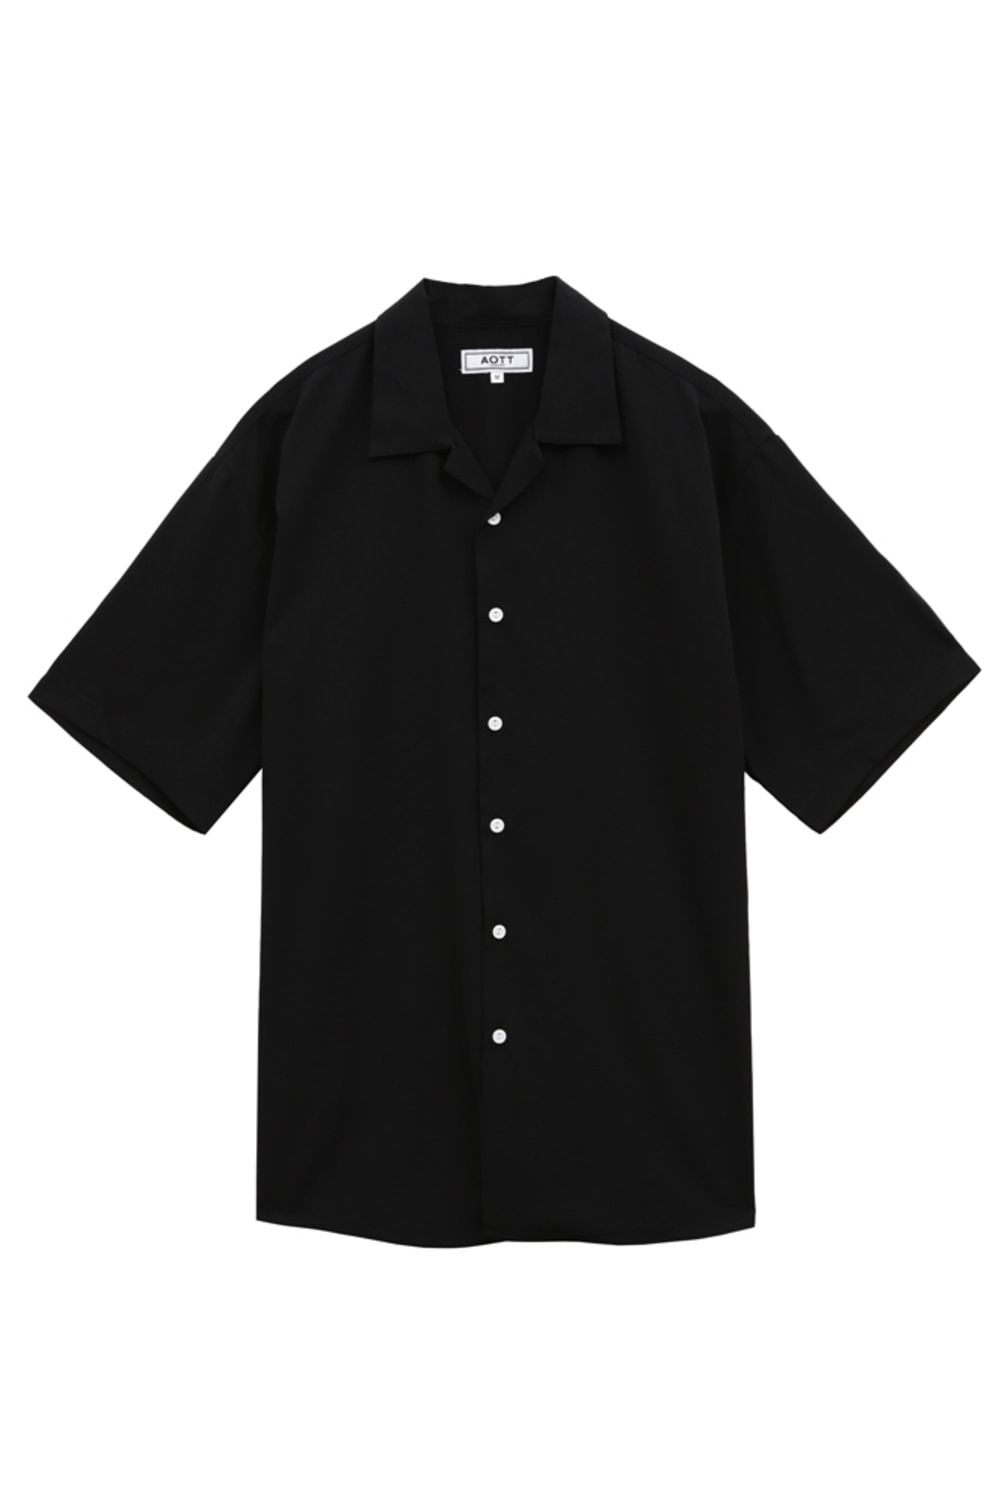 [스크래치상품]UNISEX MINIMAL OPEN COLLAR SHIRTS BLACK